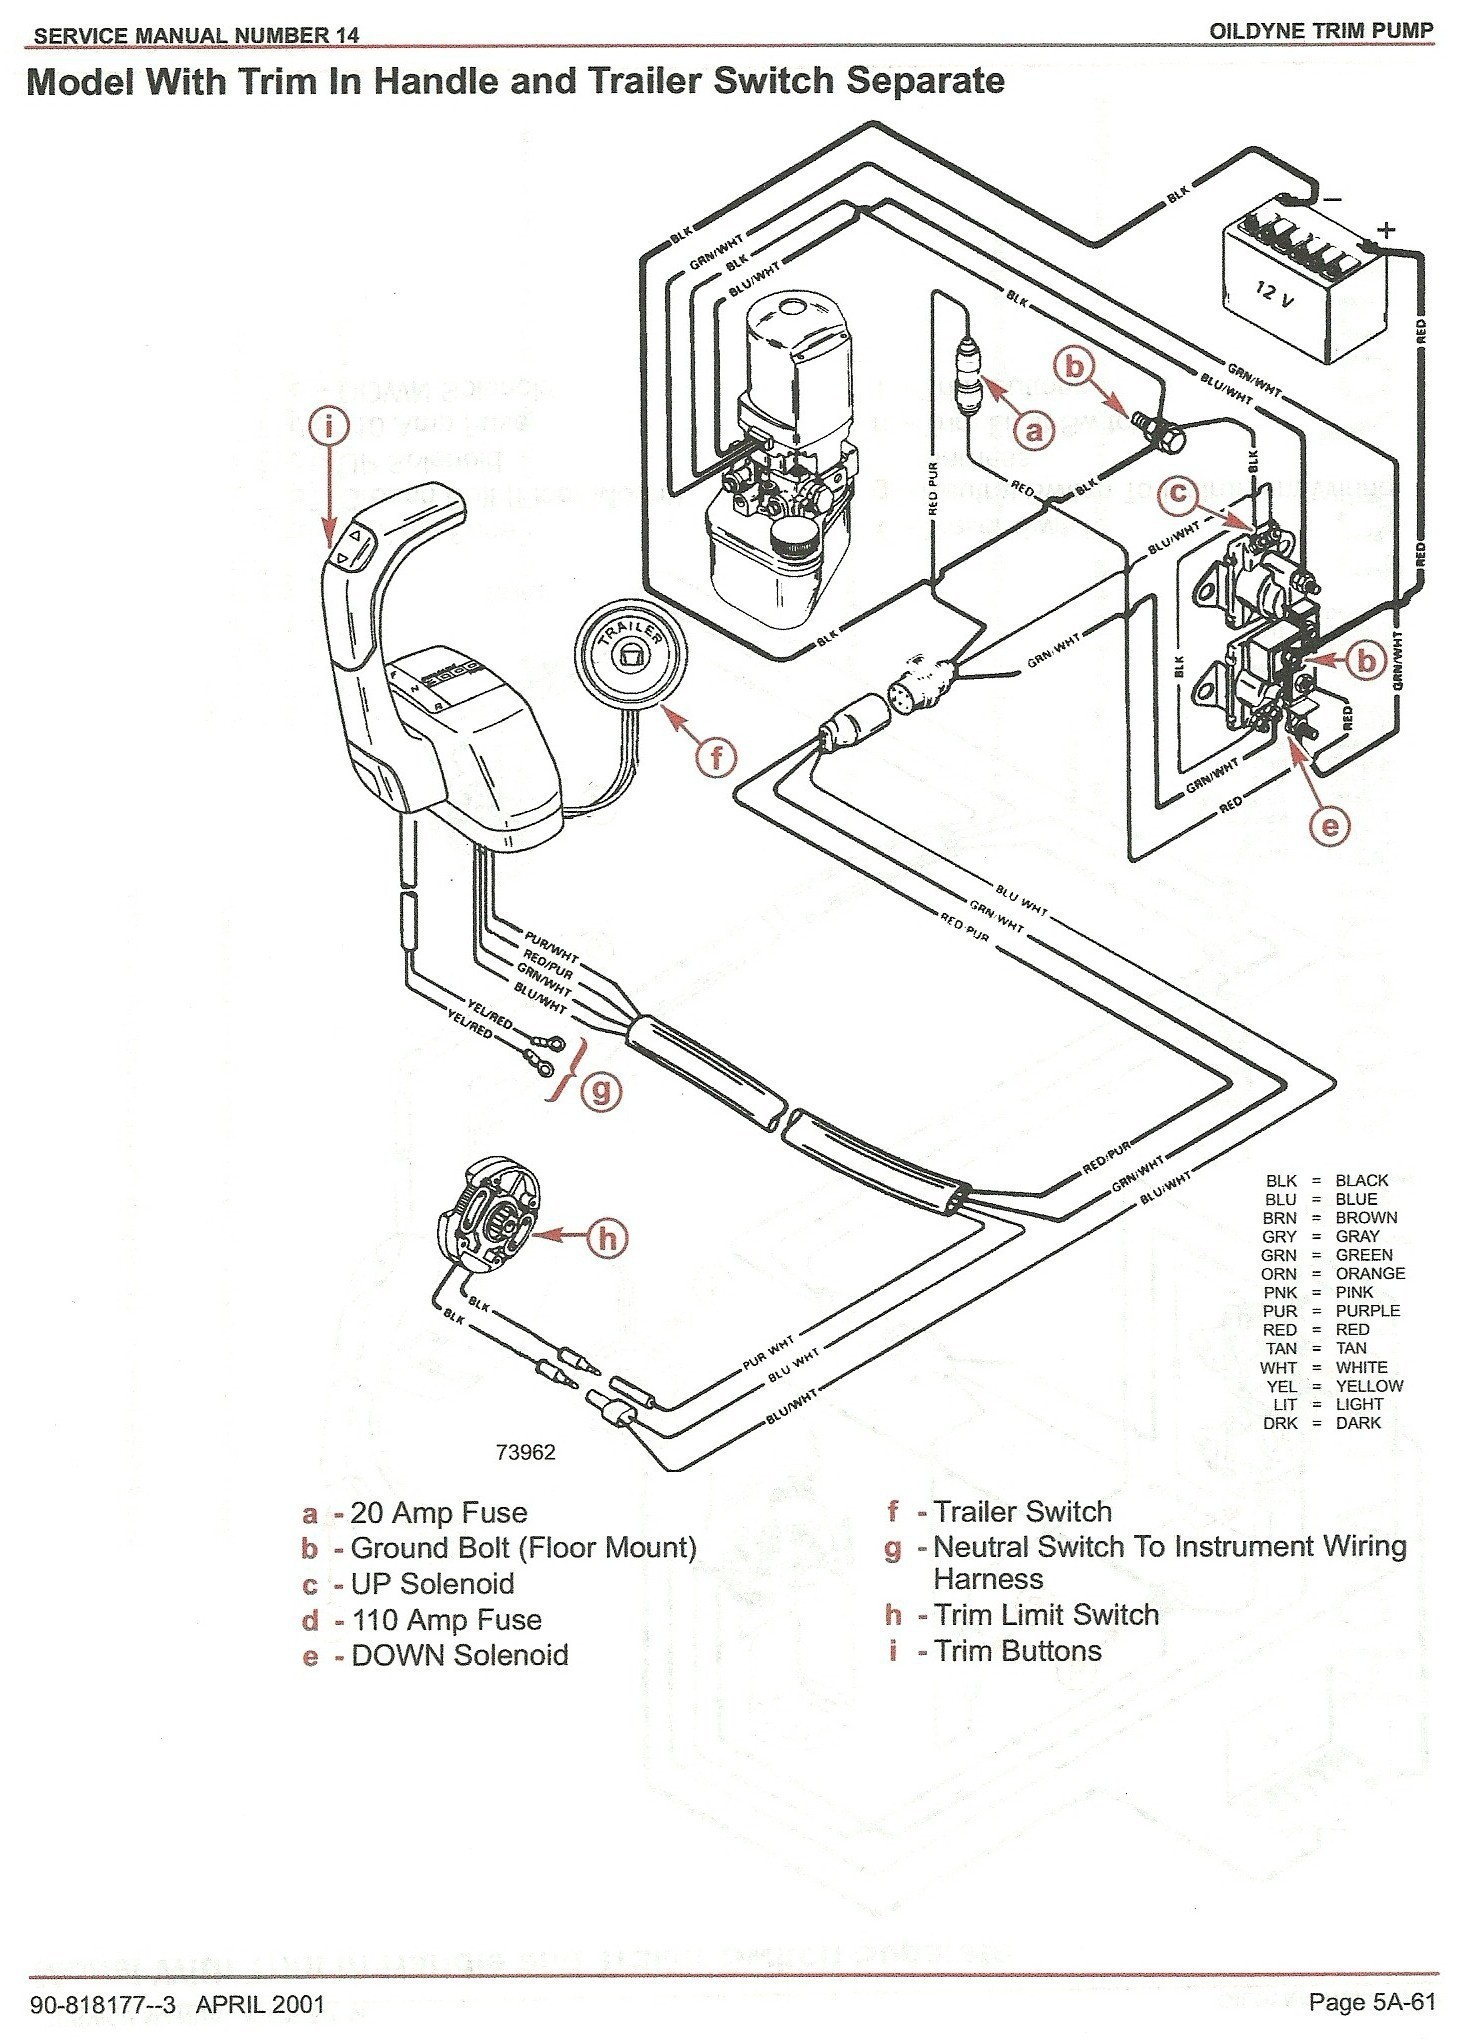 Awesome Mercruiser Tilt Trim Wiring Diagram Wiring Diagram Image Mercury Tilt  Trim Parts Mercruiser Tilt Trim